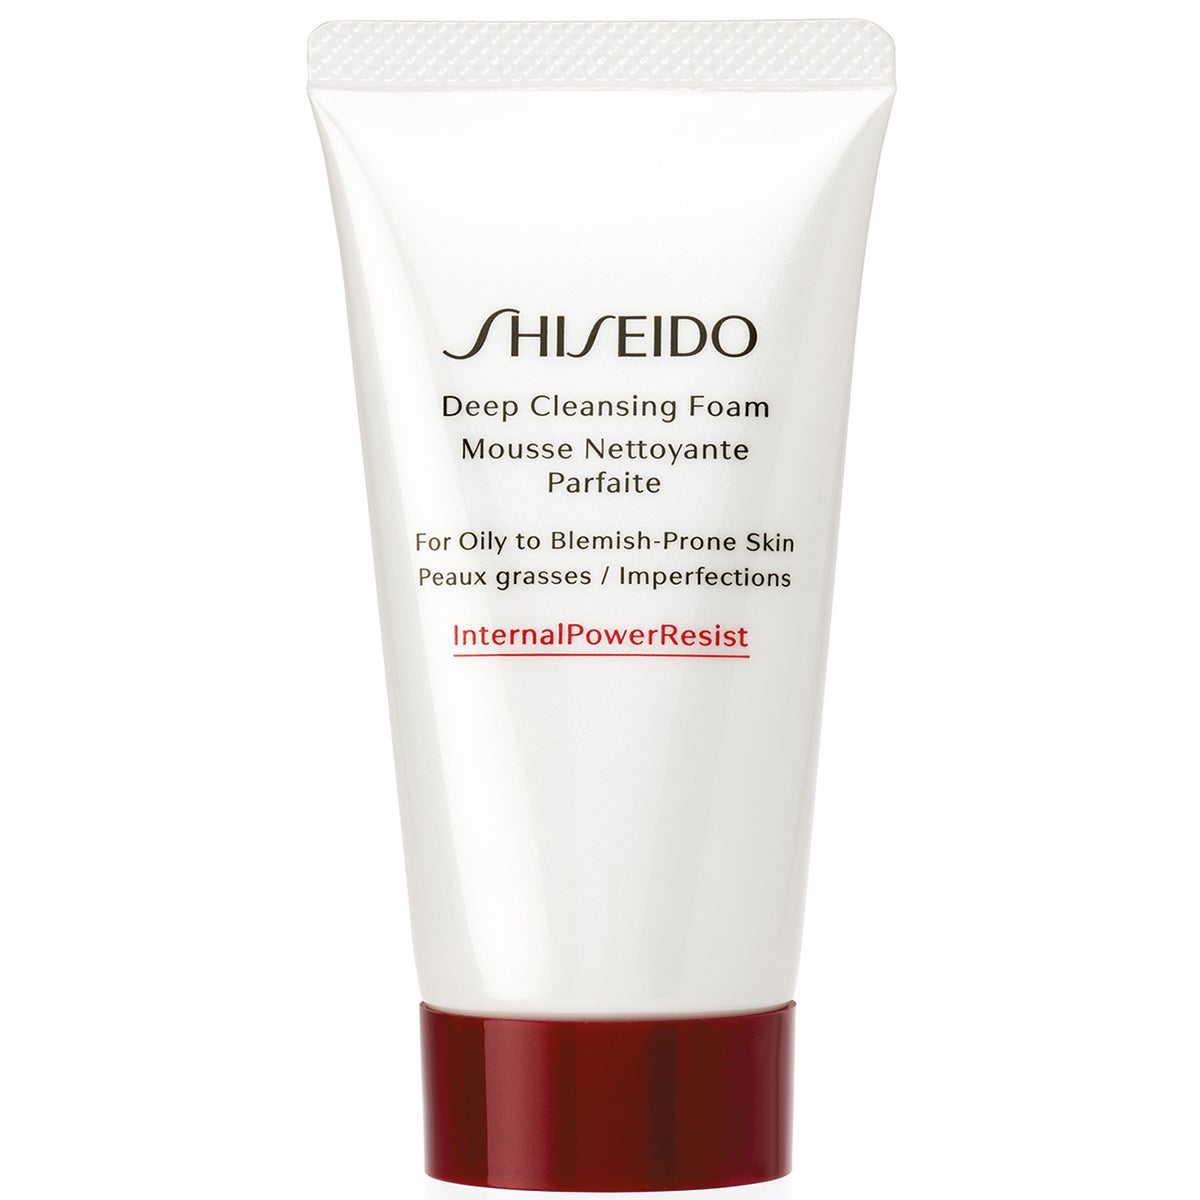 Shiseido Deep Cleansing Foam GWP